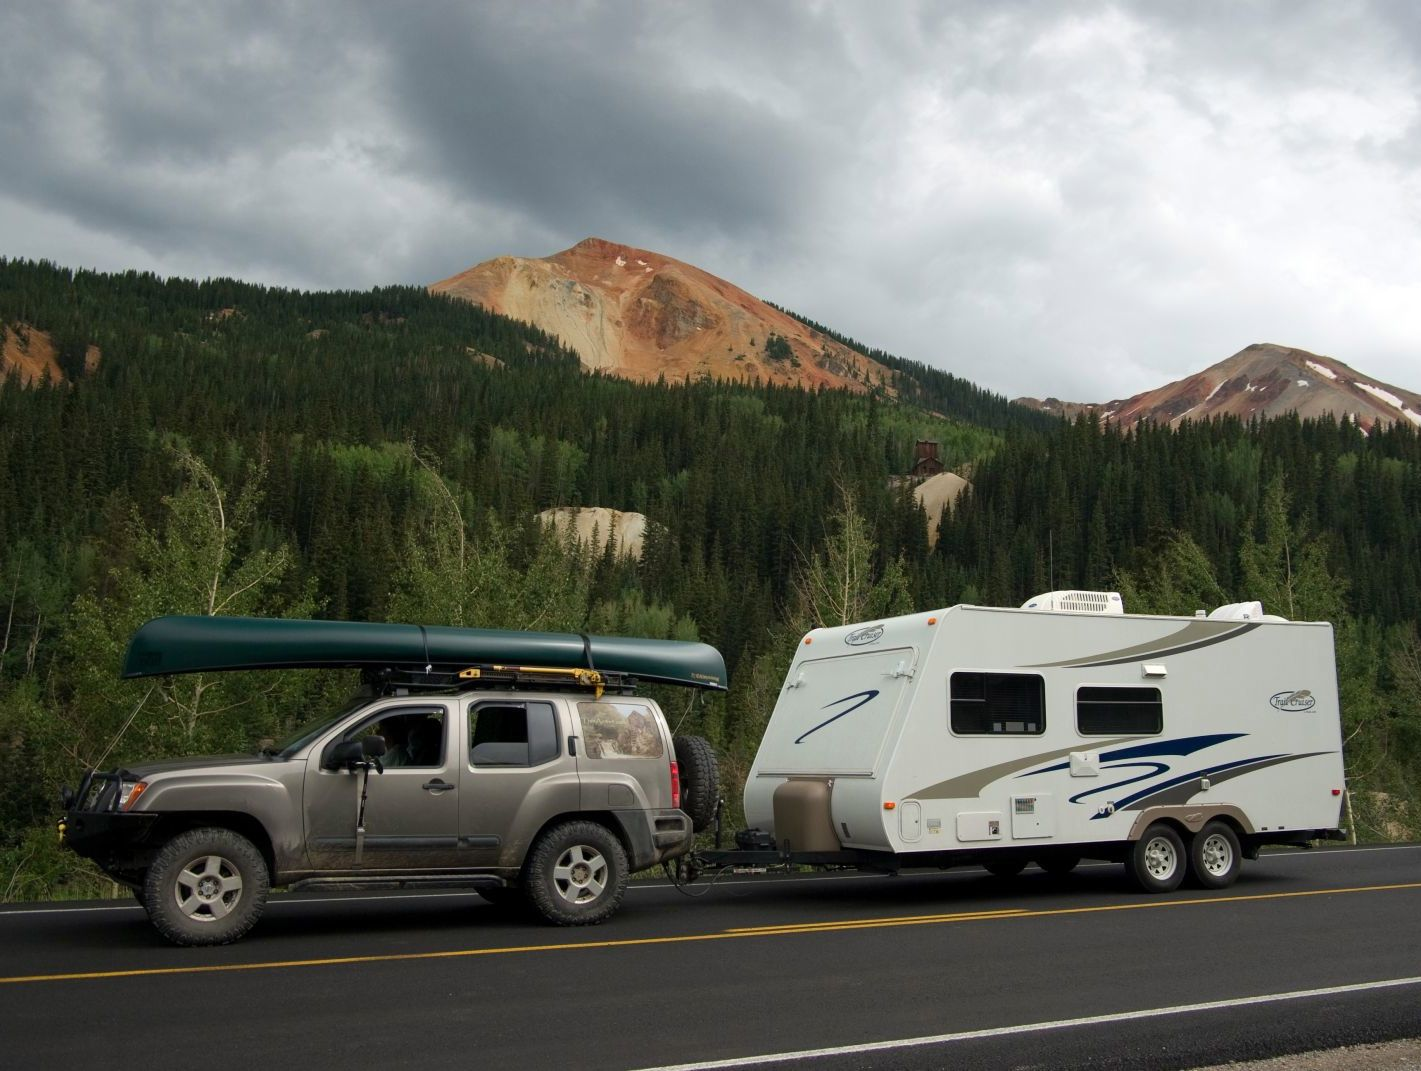 Towing a small popup trailer or a large van behind a motor